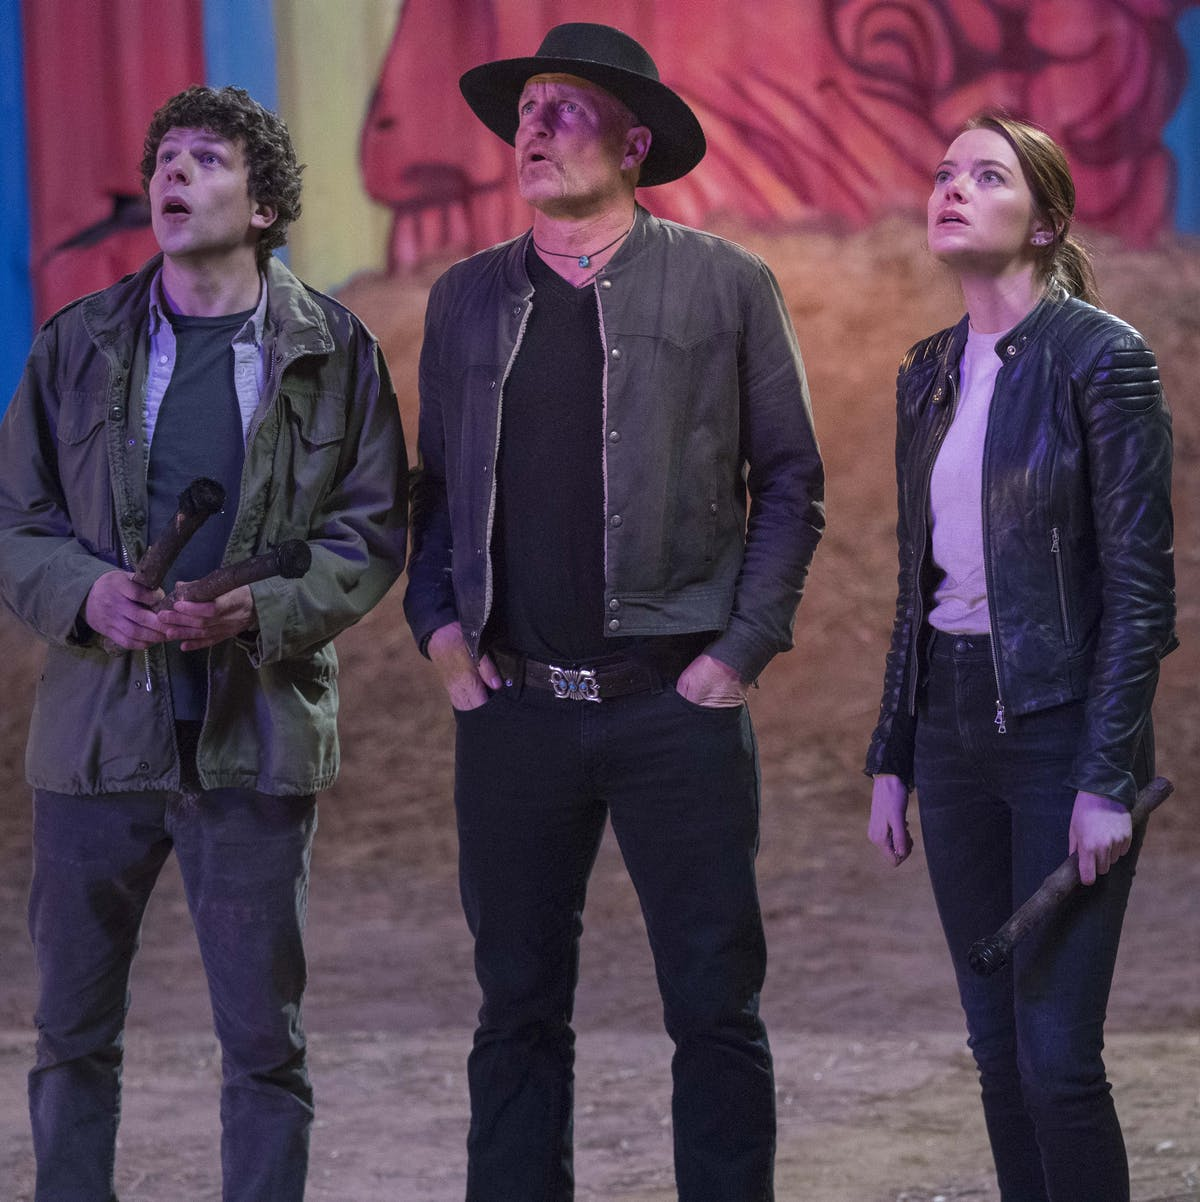 'Zombieland: Double Tap' proves the zombie genre still has some life in it